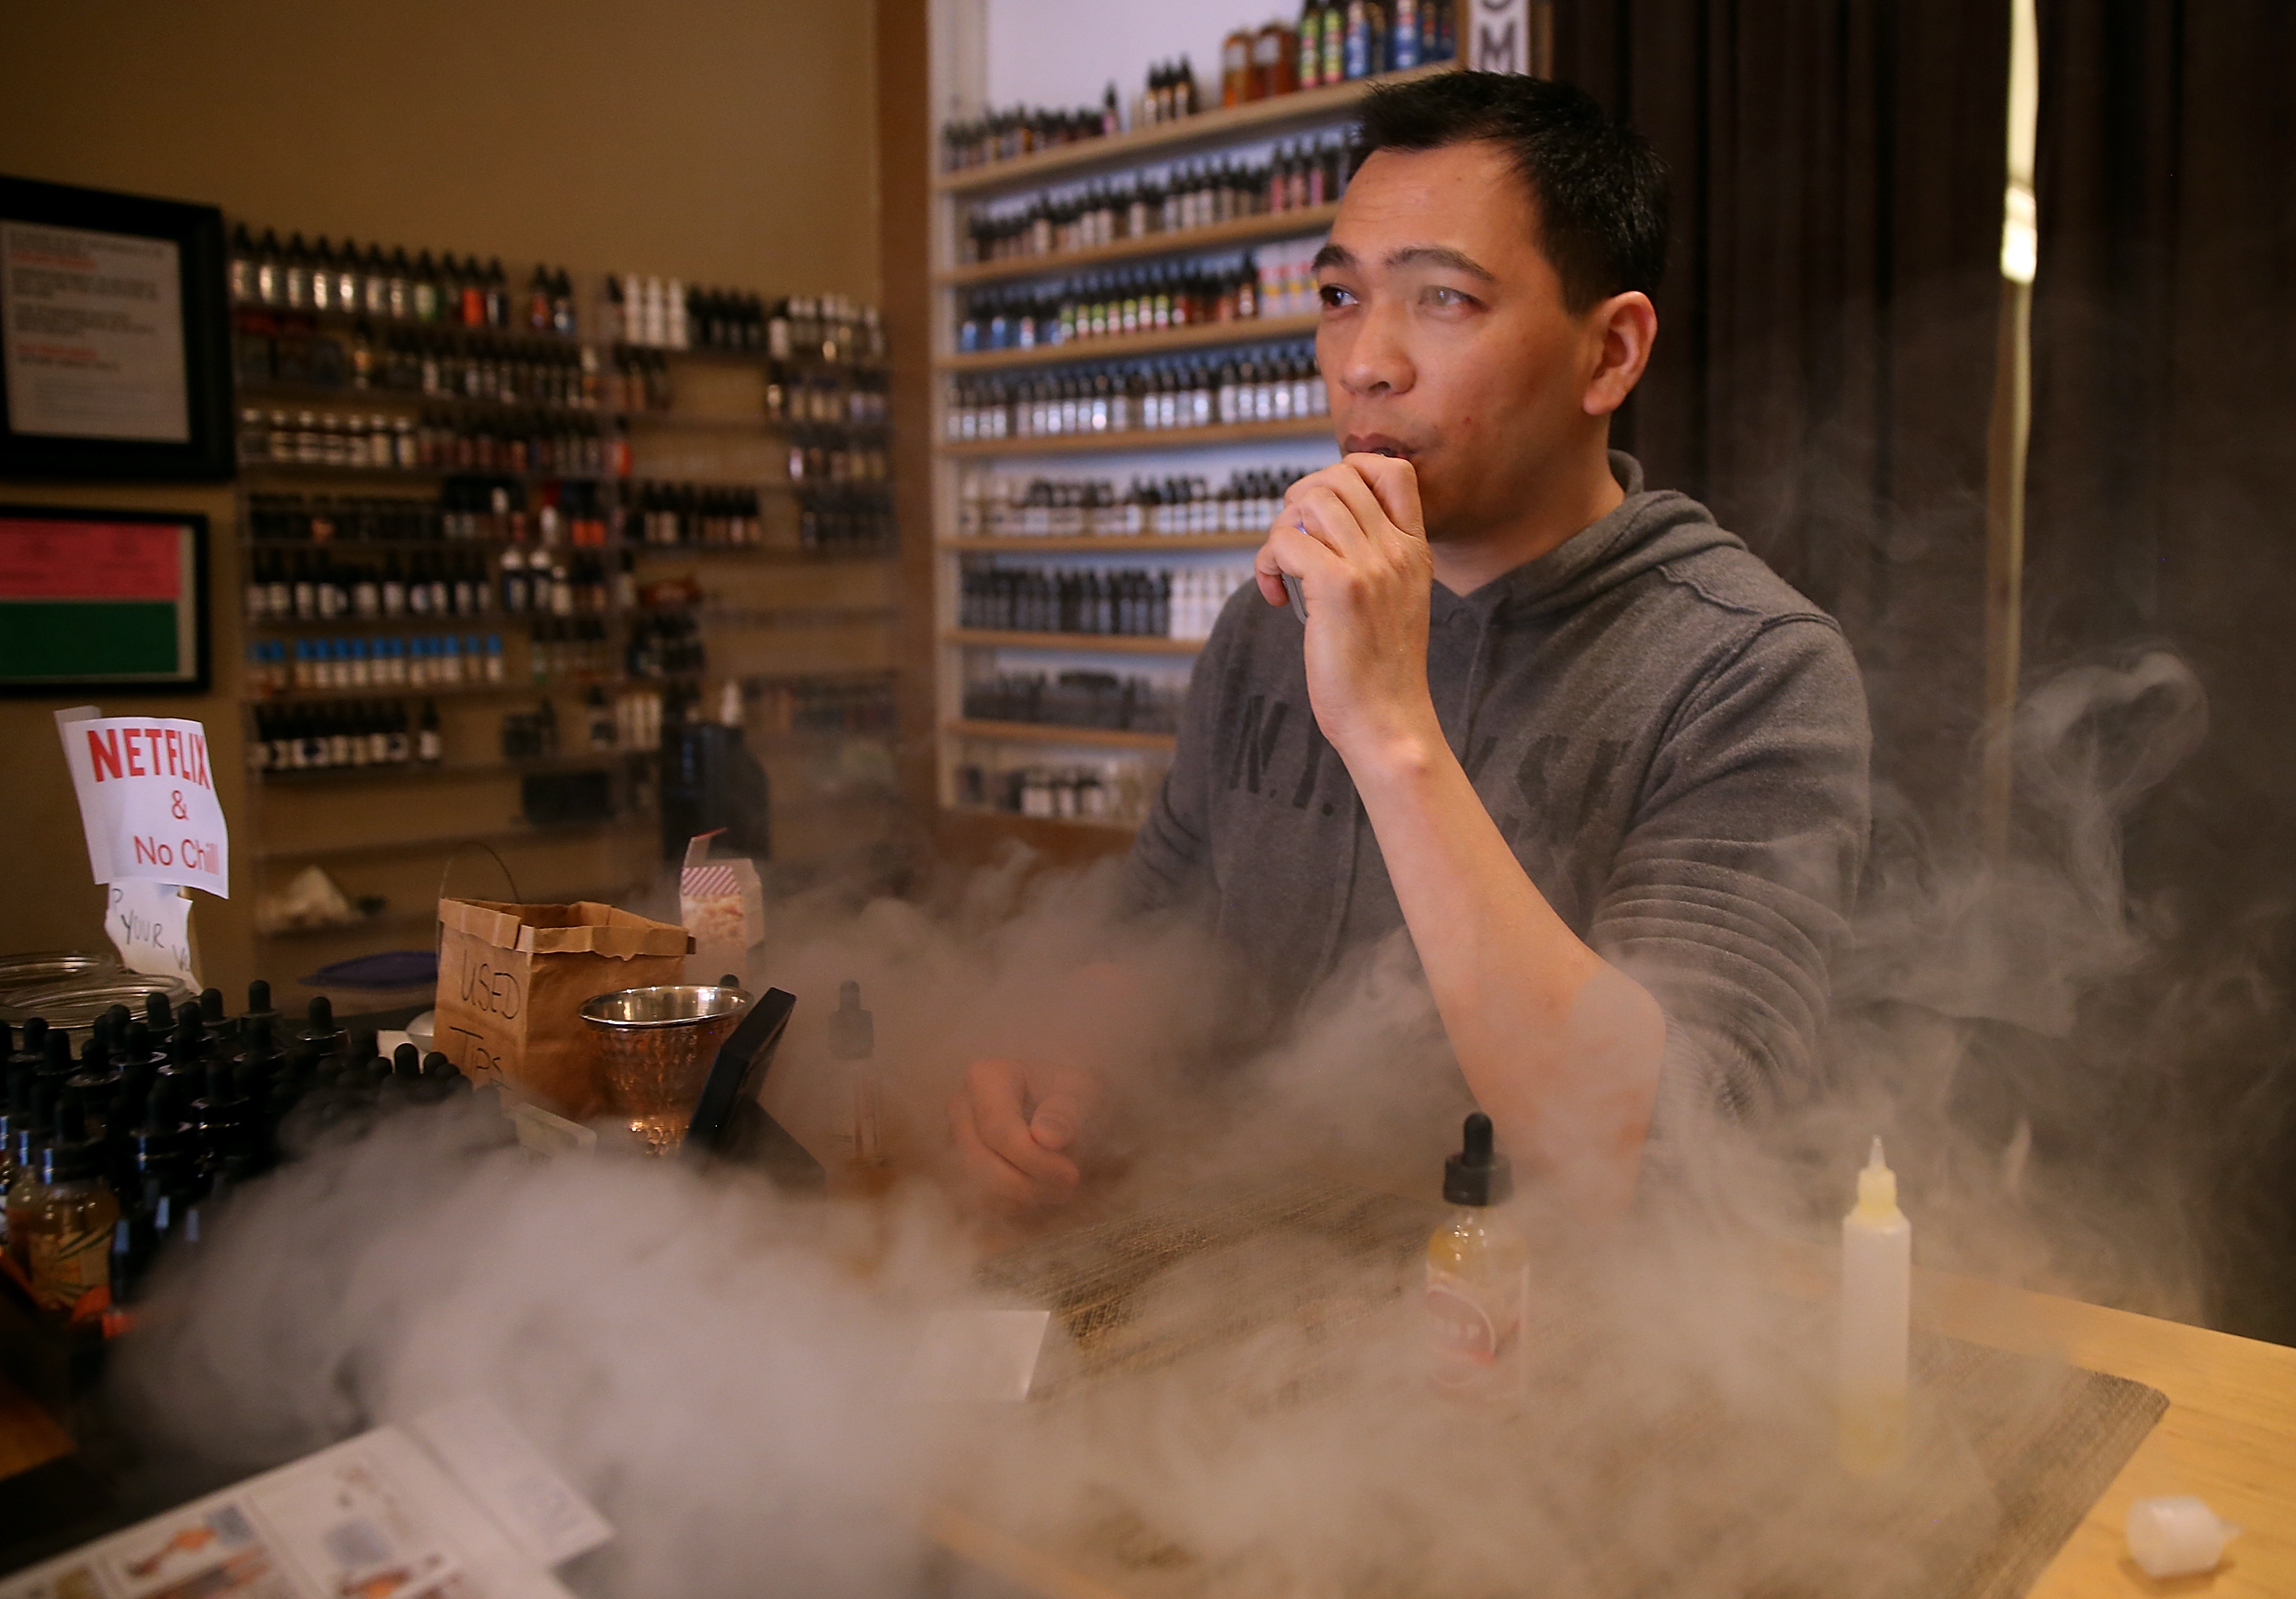 SAN FRANCISCO, CA - MAY 05:  Christopher Chin blows puffs on an e-cigarette as he waits for customers at Gone With the Smoke Vapor Lounge on May 5, 2016 in San Francisco, California. The U.S. Food and Drug Administration announced new federal regulations on electronic cigarettes that will be the same as traditional tobacco cigarettes and chewing tobacco.  (Photo by Justin Sullivan/Getty Images)